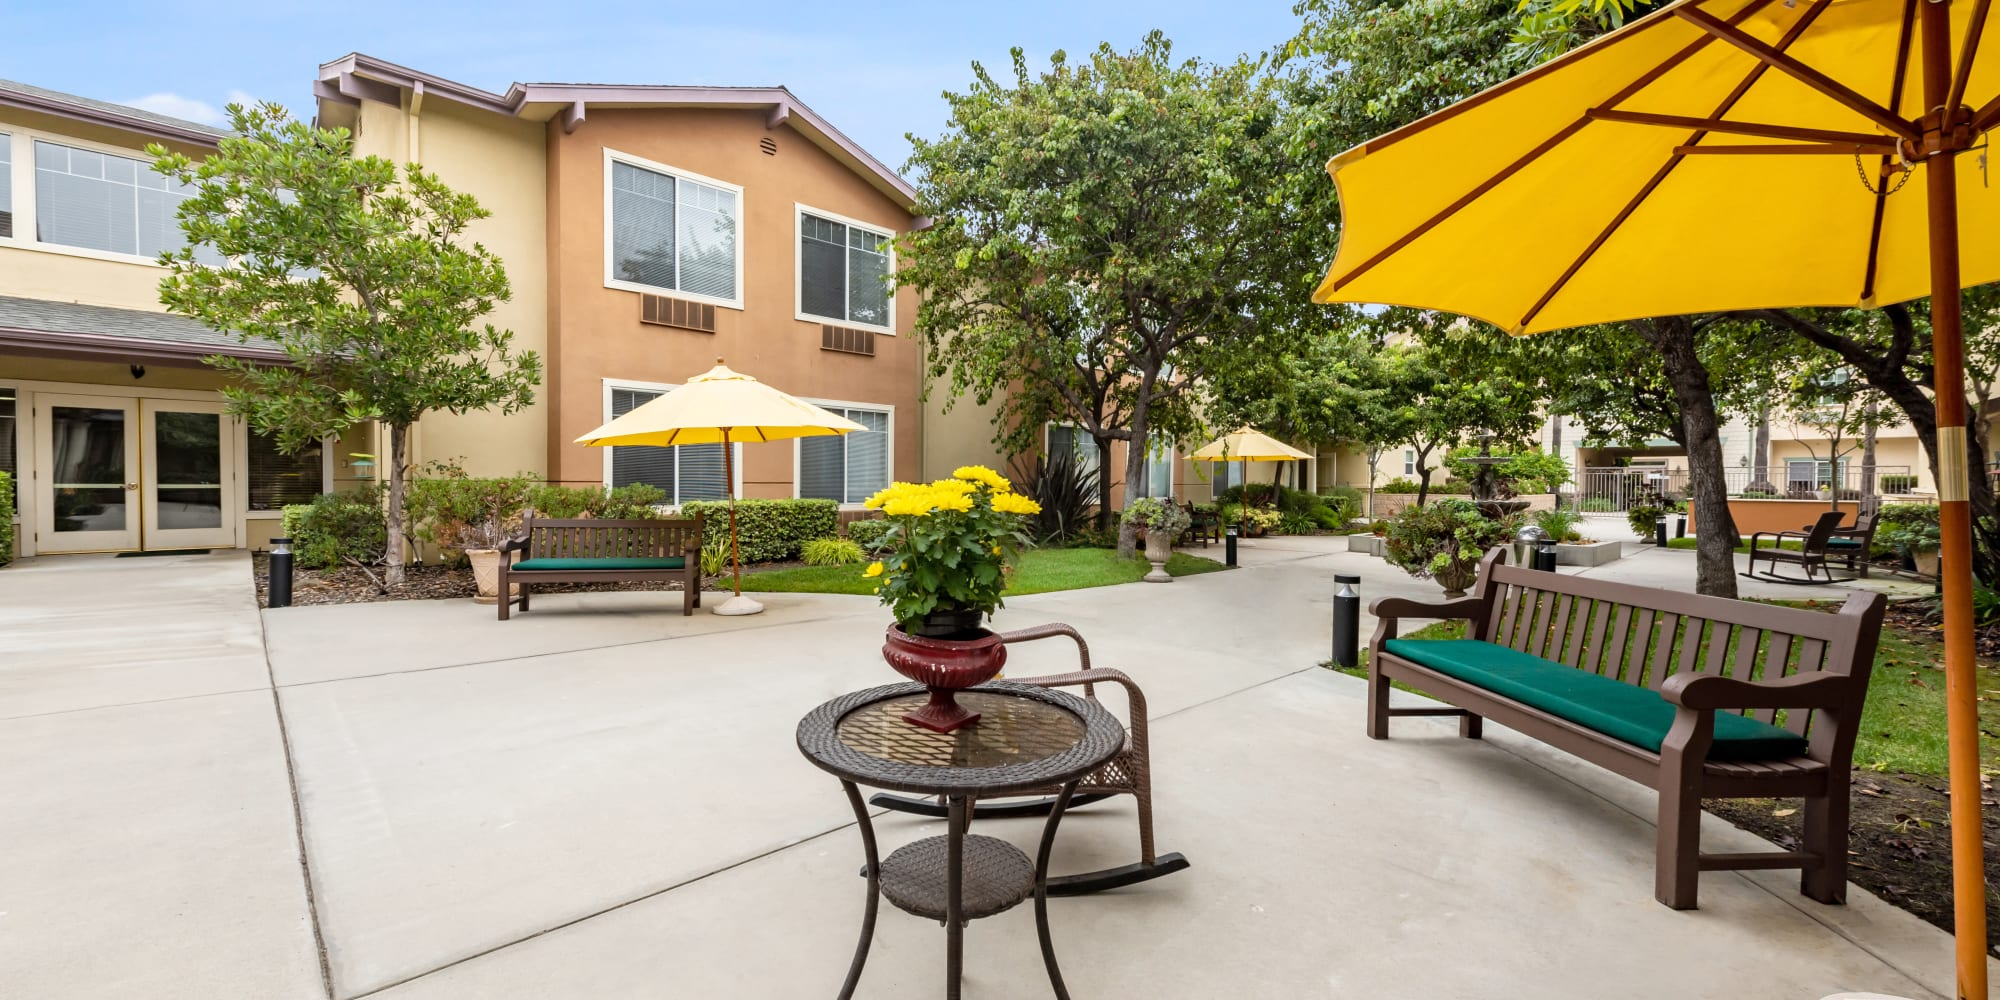 Exterior image of Cypress Place in Ventura, California